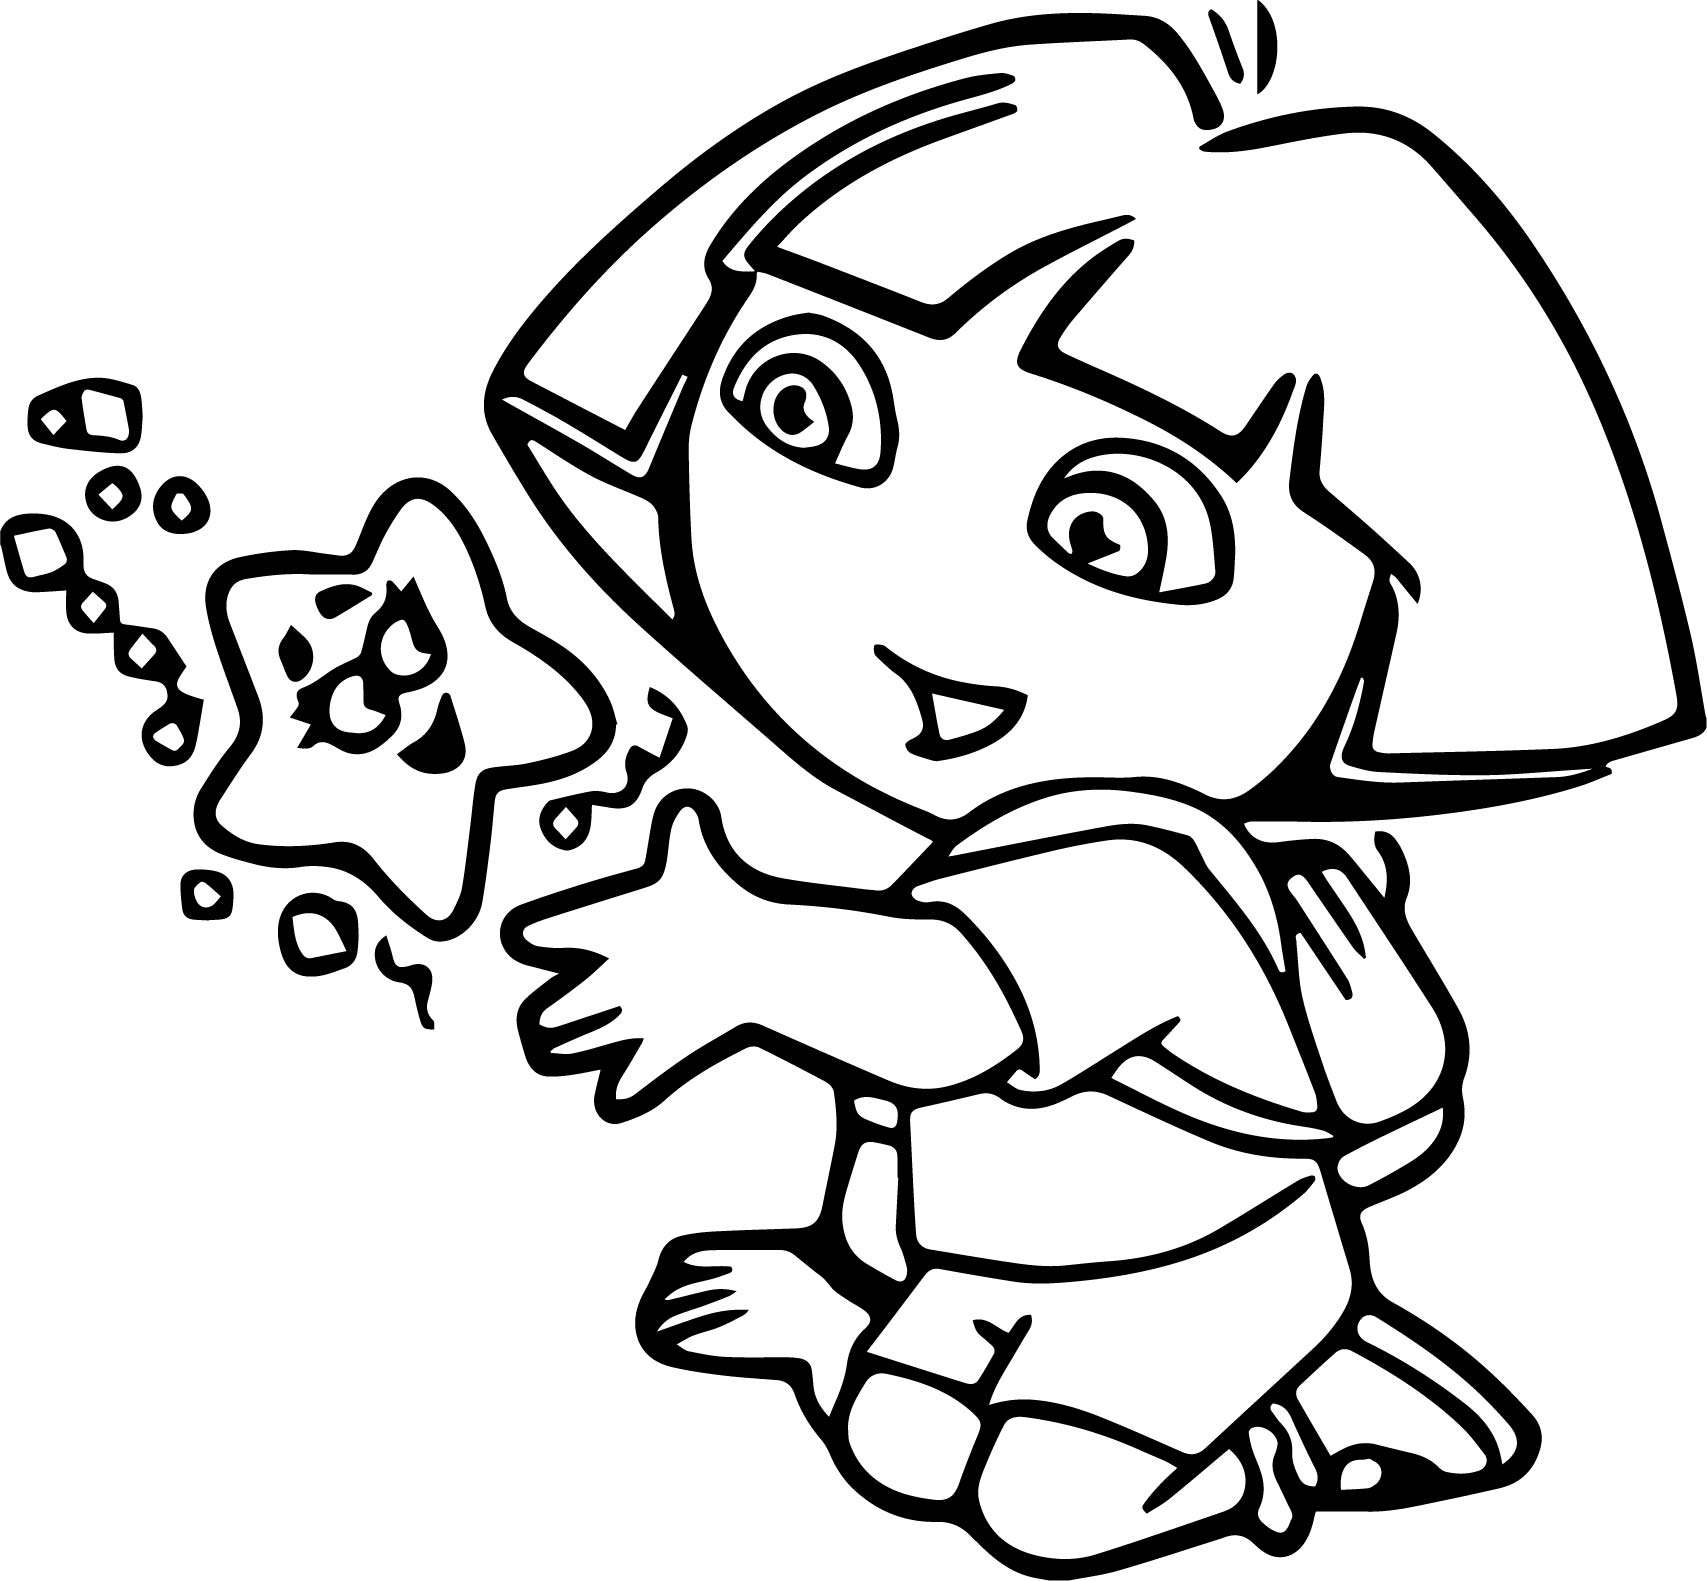 dora stars coloring pages - photo#4